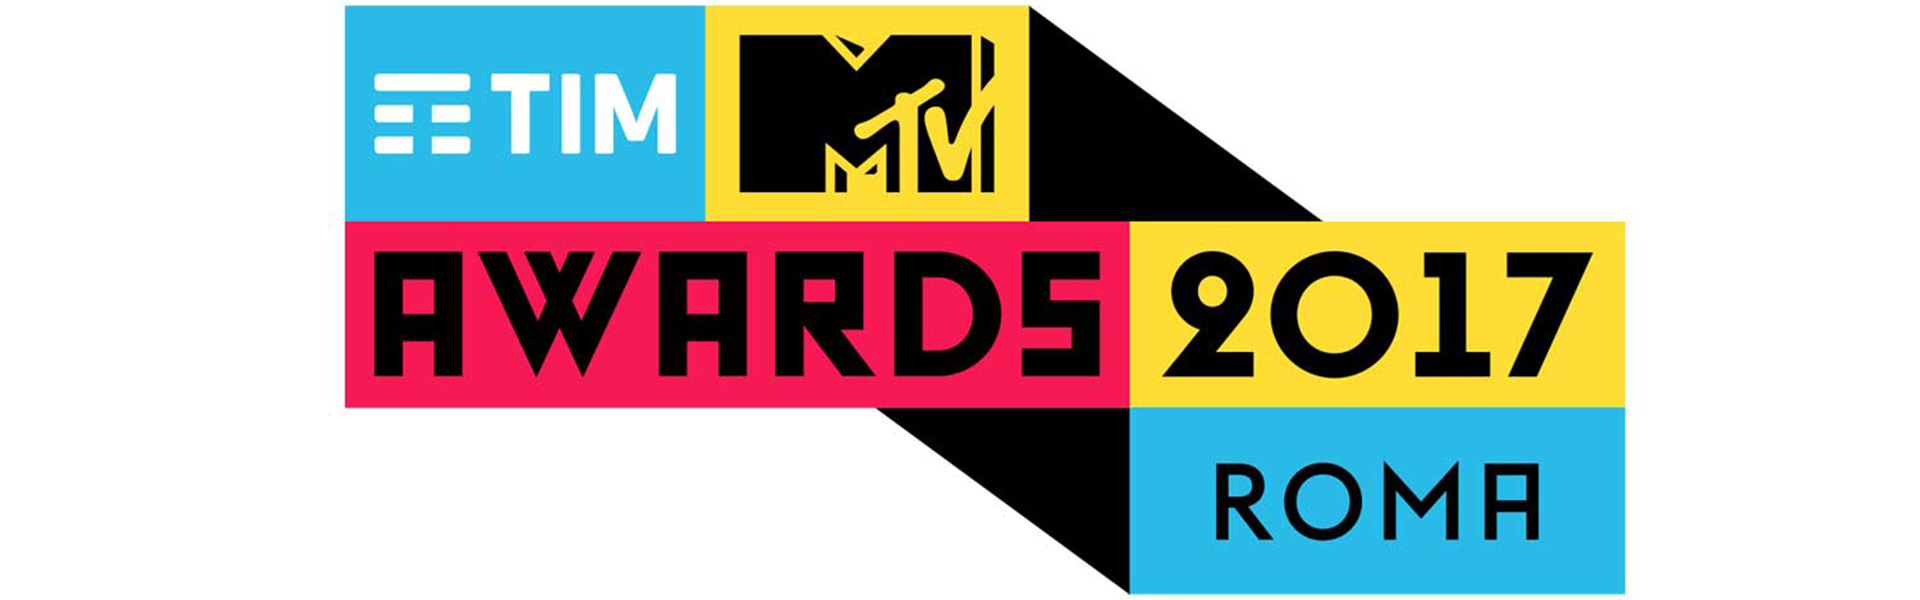 MTV Awards 2017 Roma